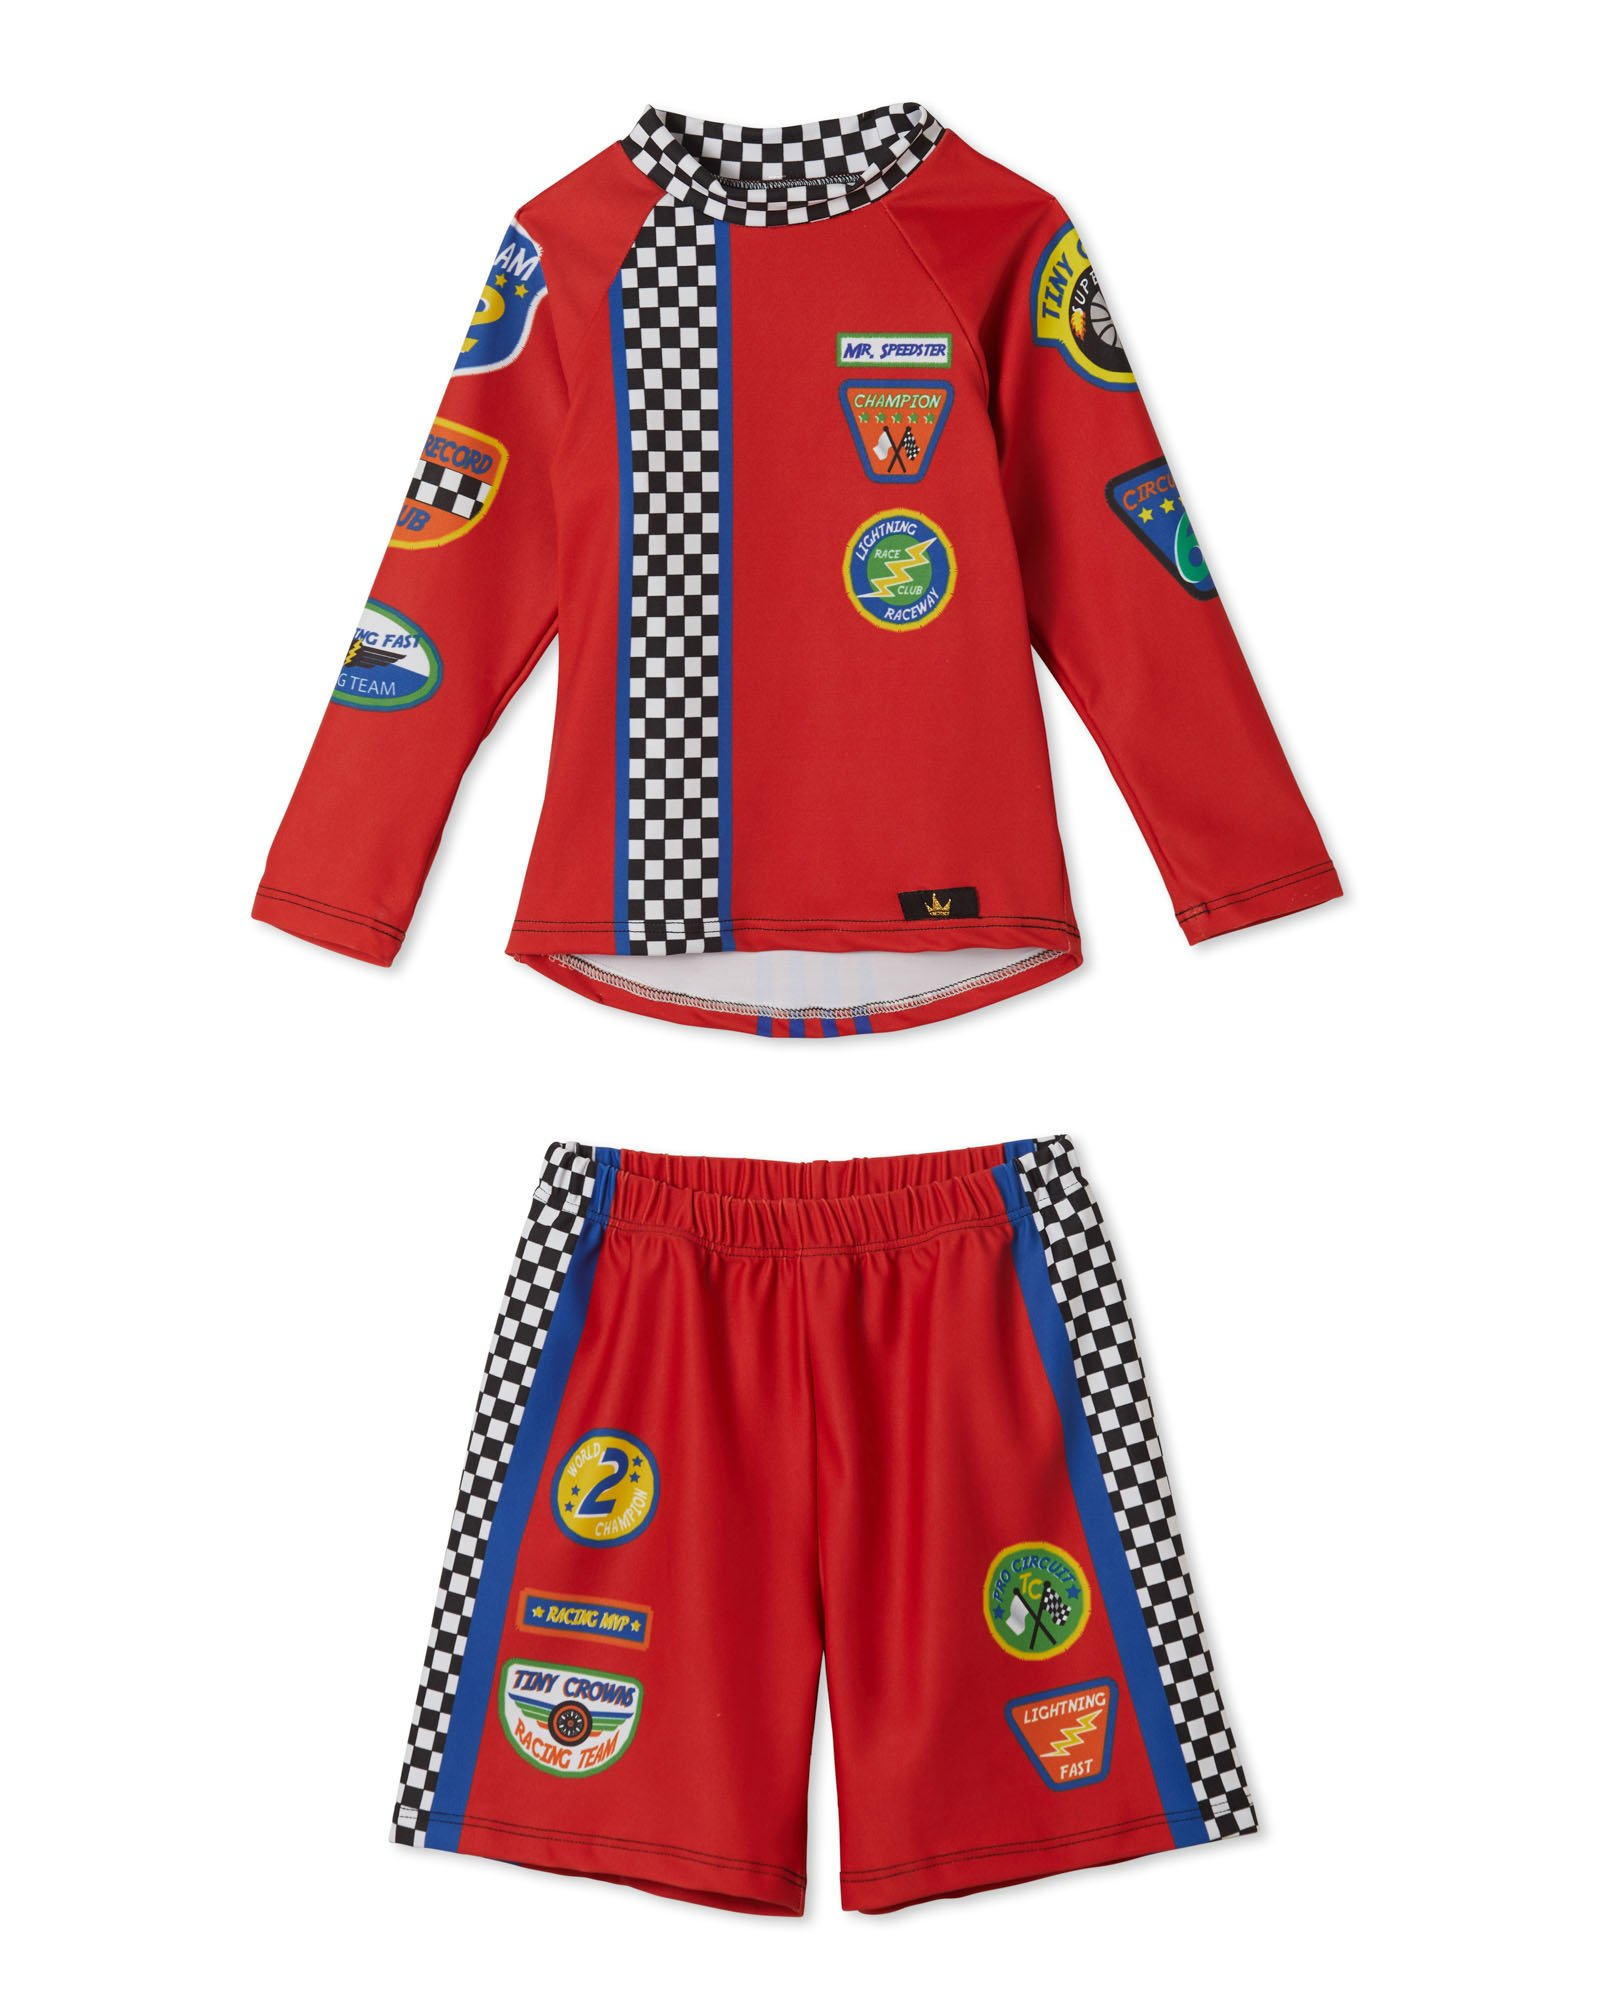 Little Boys Racecar Swim Trunks and Swimsuit Set – UPF 50 – Made in The USA (3T)